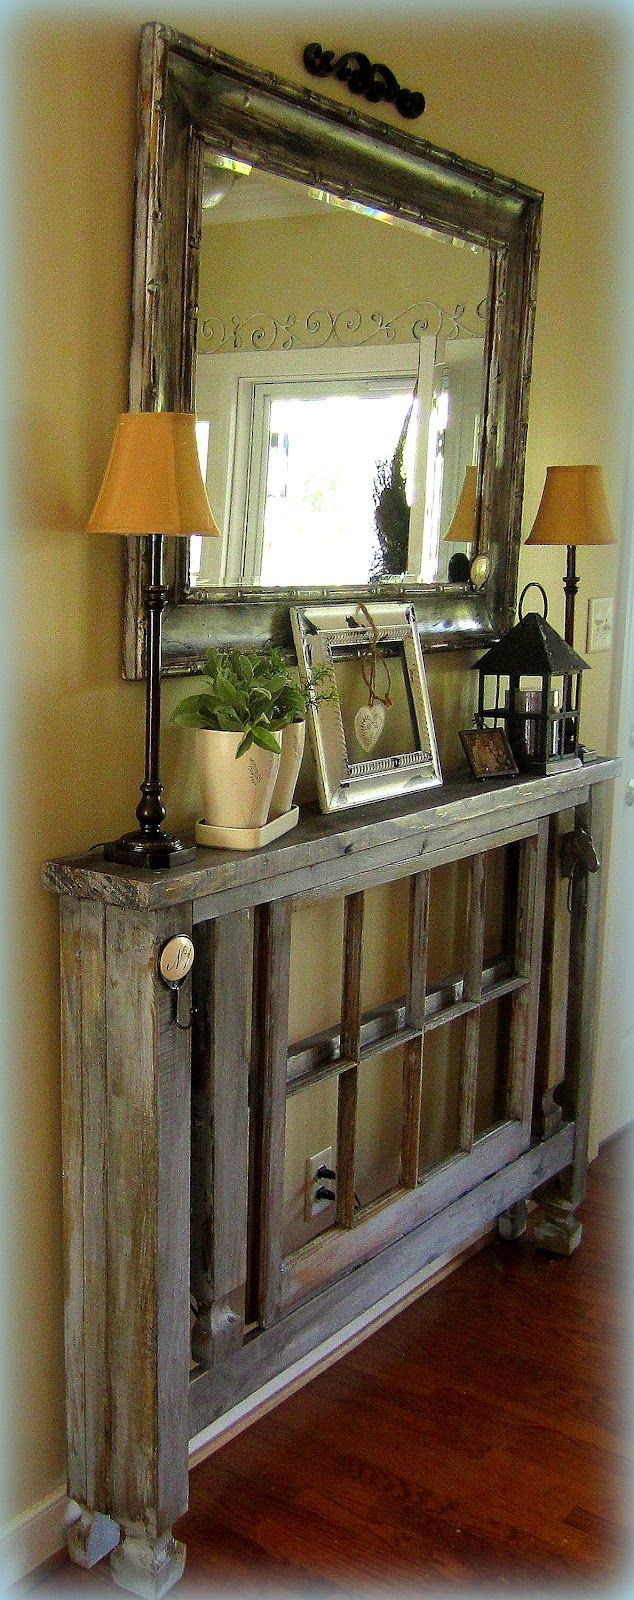 Entry way decor - No room in your hall way or entry?  Wow... this solves it.  My